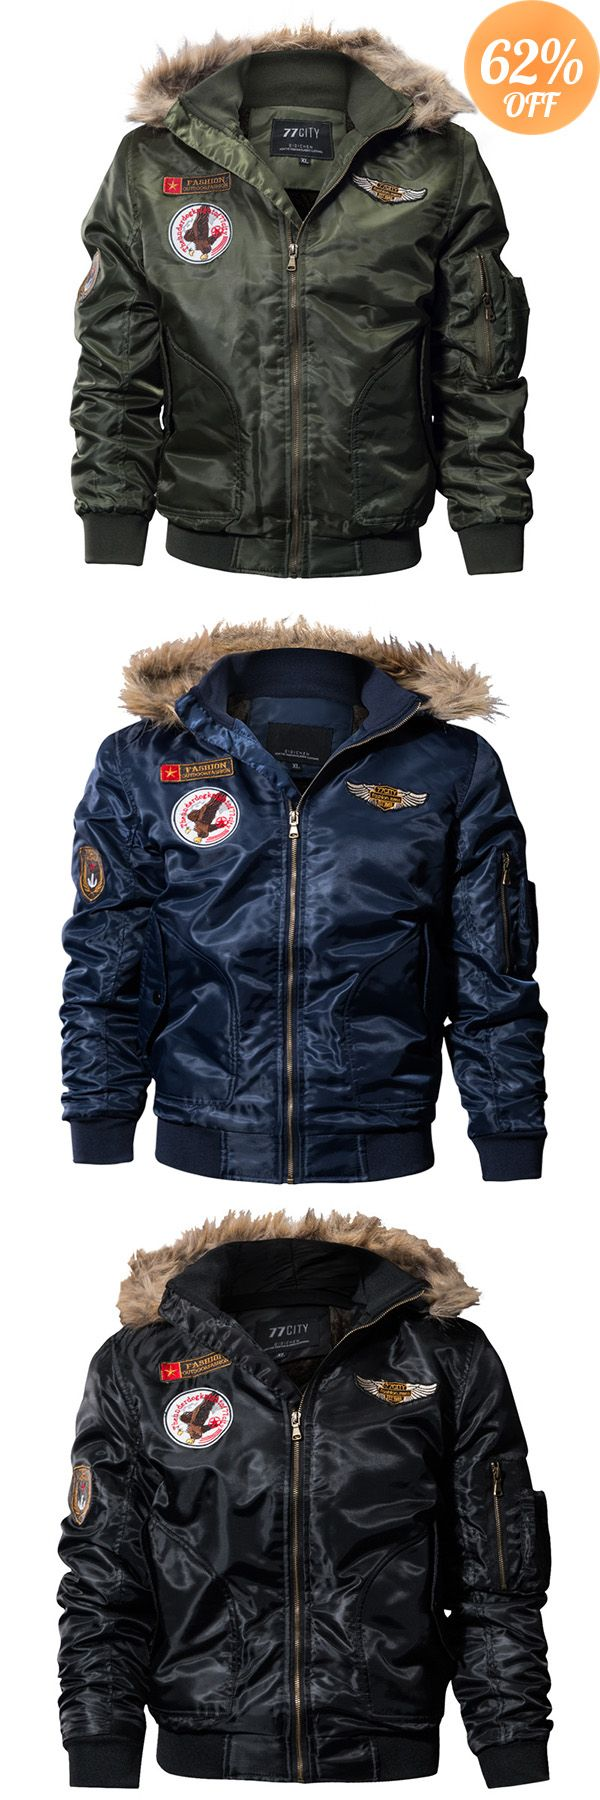 The Most Wanted Bomber Jackets This Winter. Special Discount Now. Repin if you like it.